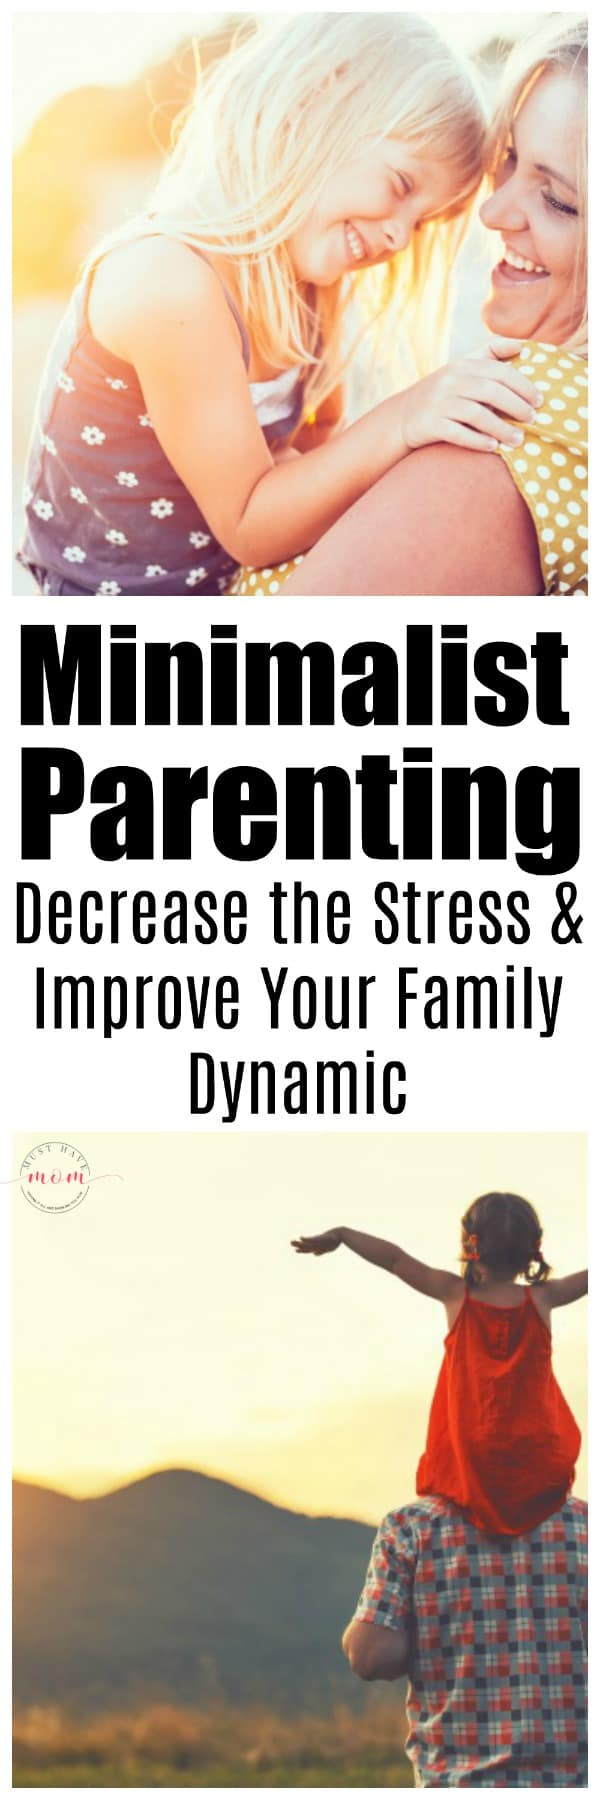 Minimalist parenting tips to decrease stress and improve the family dynamic.